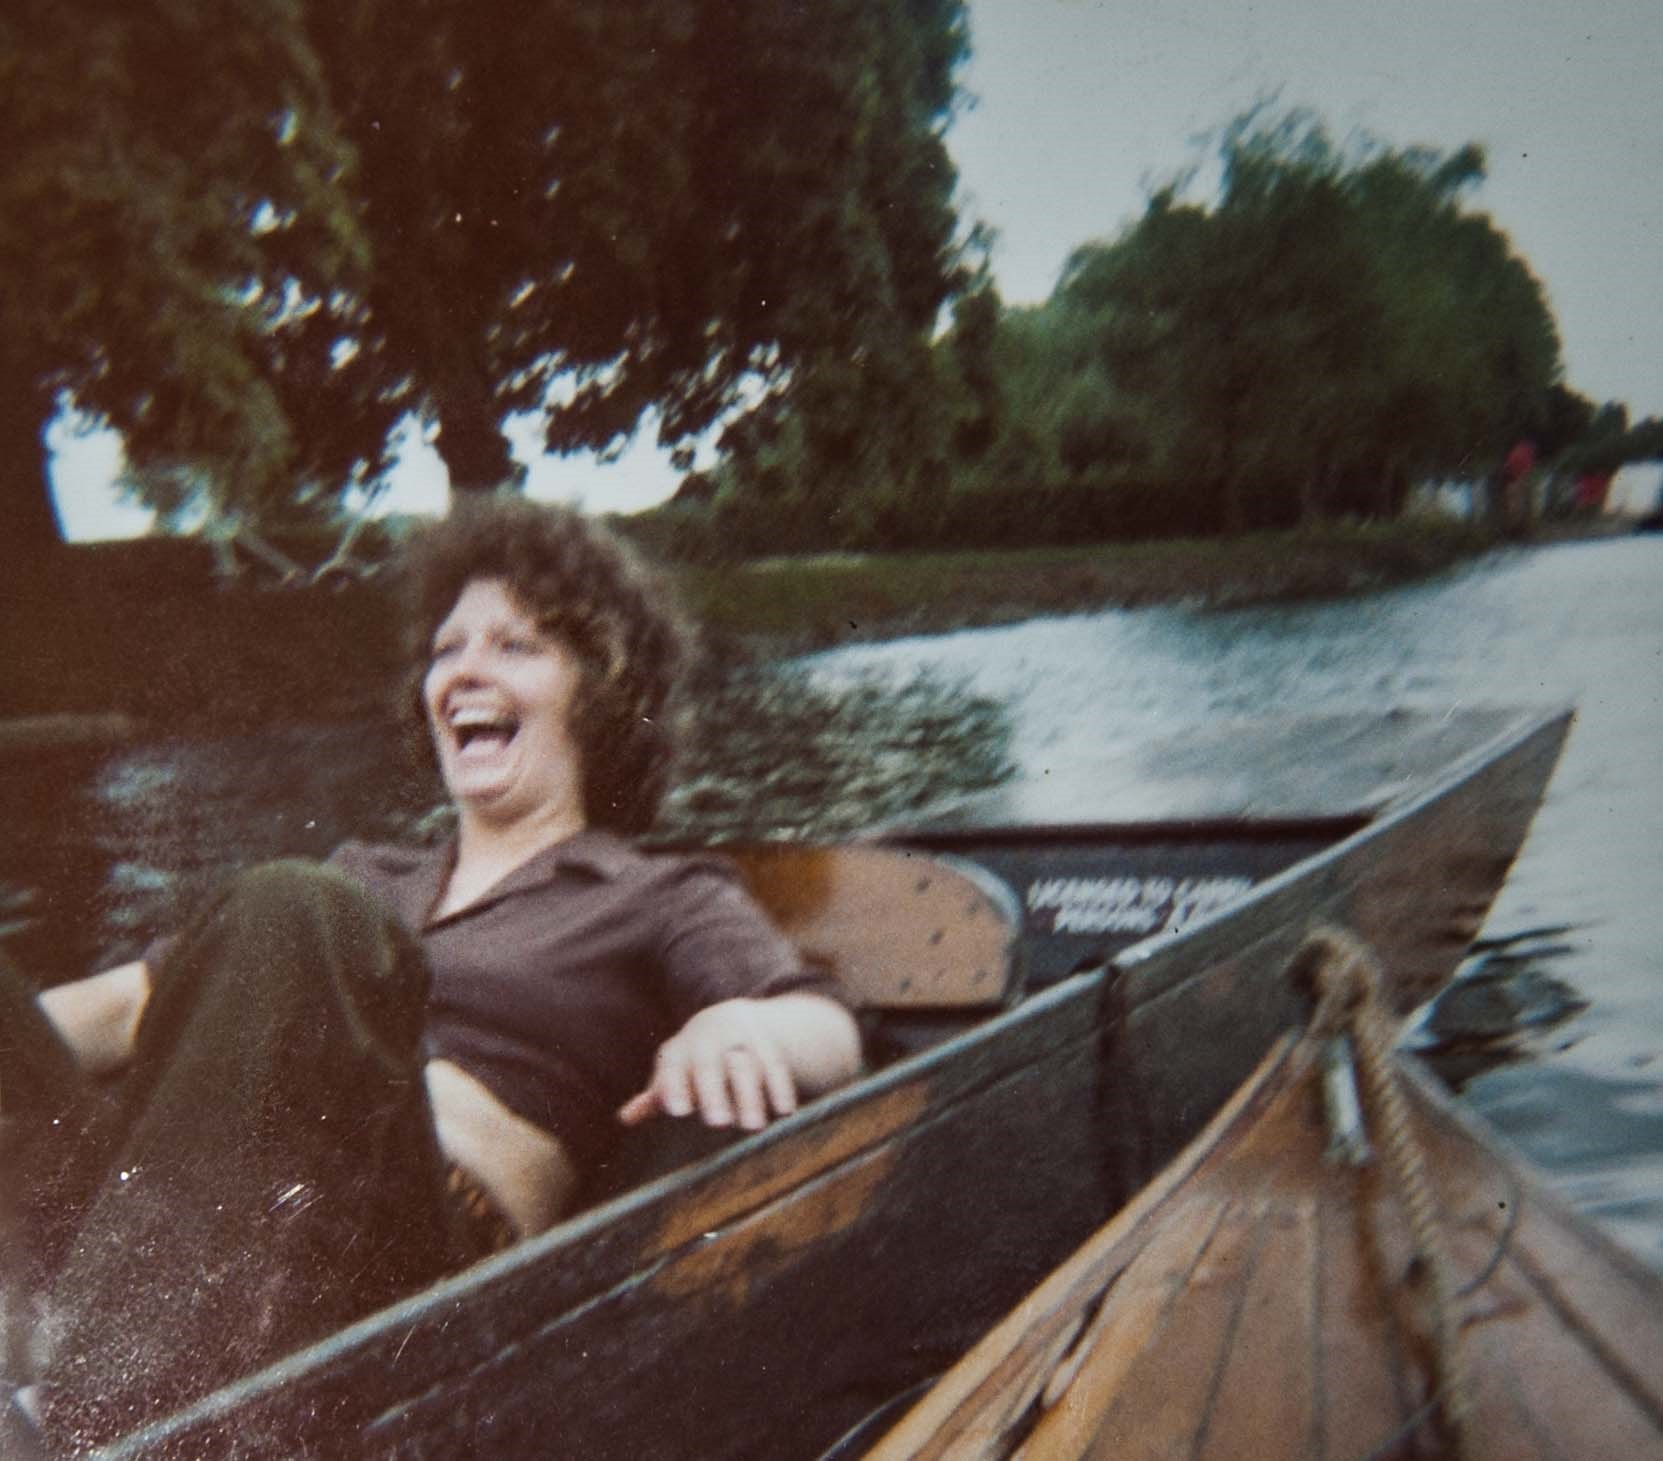 Typical Mavis.....Stratford..circa 1975....we rammed the punt she and Gavin were on, nearly throwing everyone into the water...she laughed her head off...x